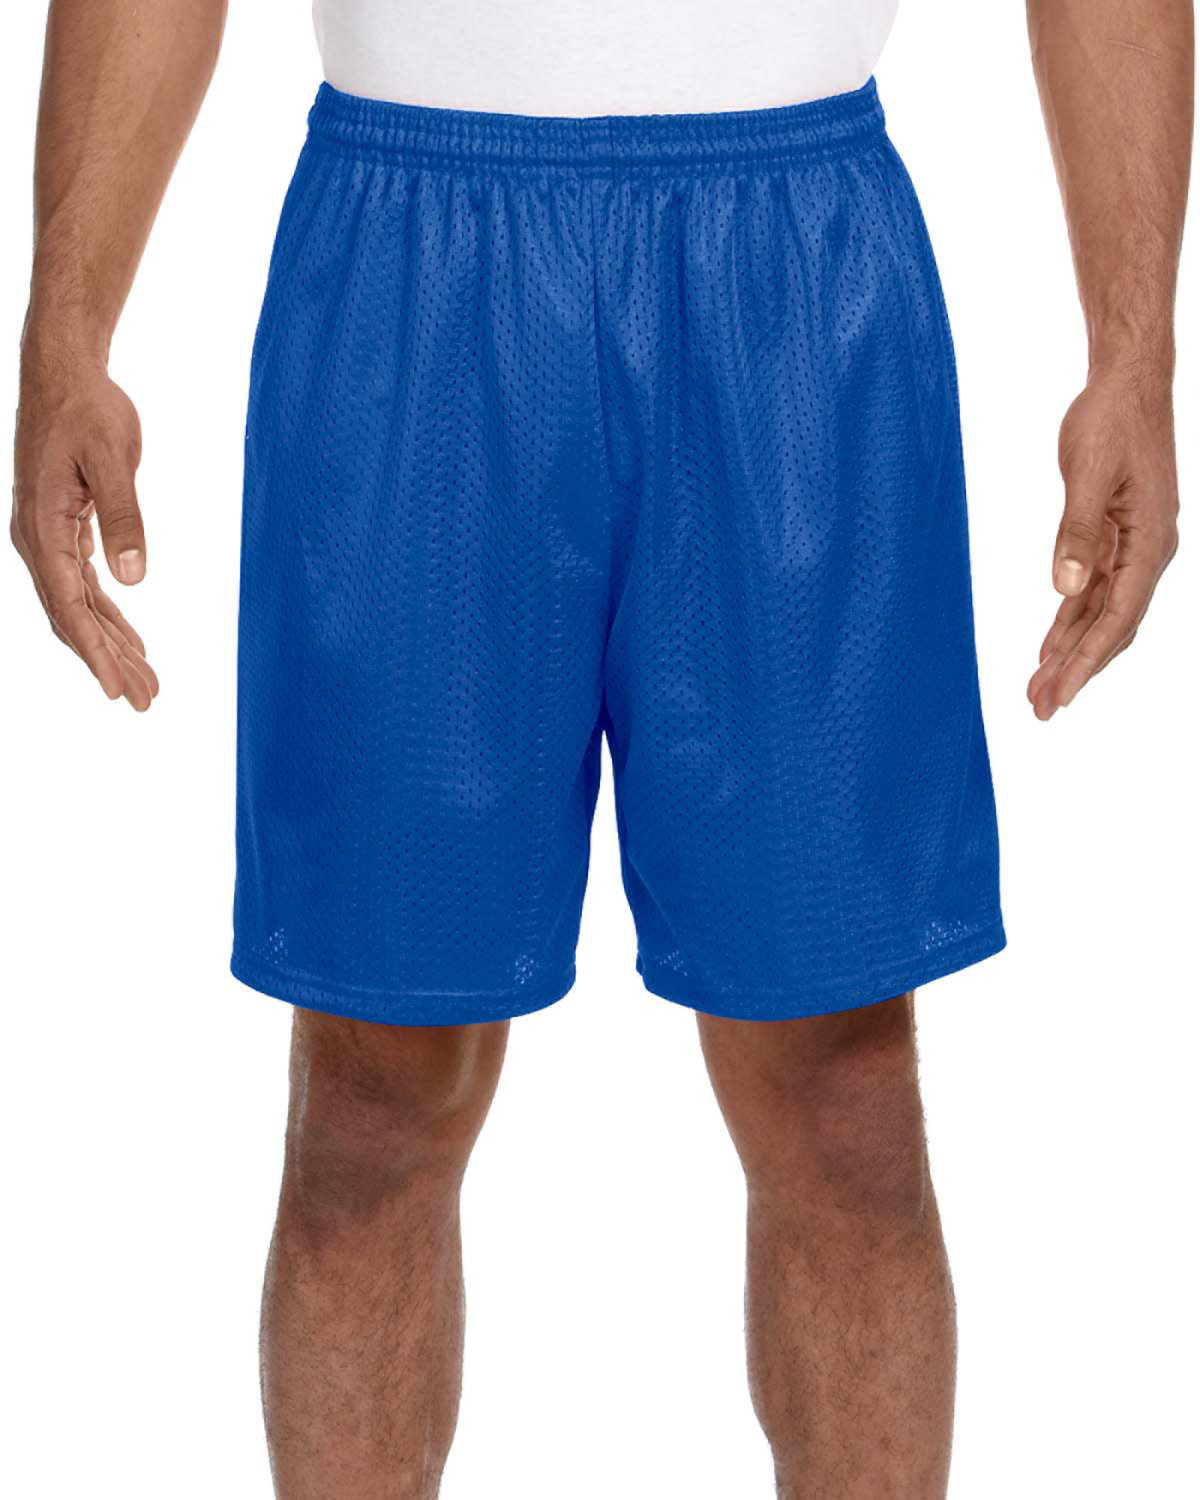 A4 Adult Seven Inch Inseam Mesh Short ROYAL